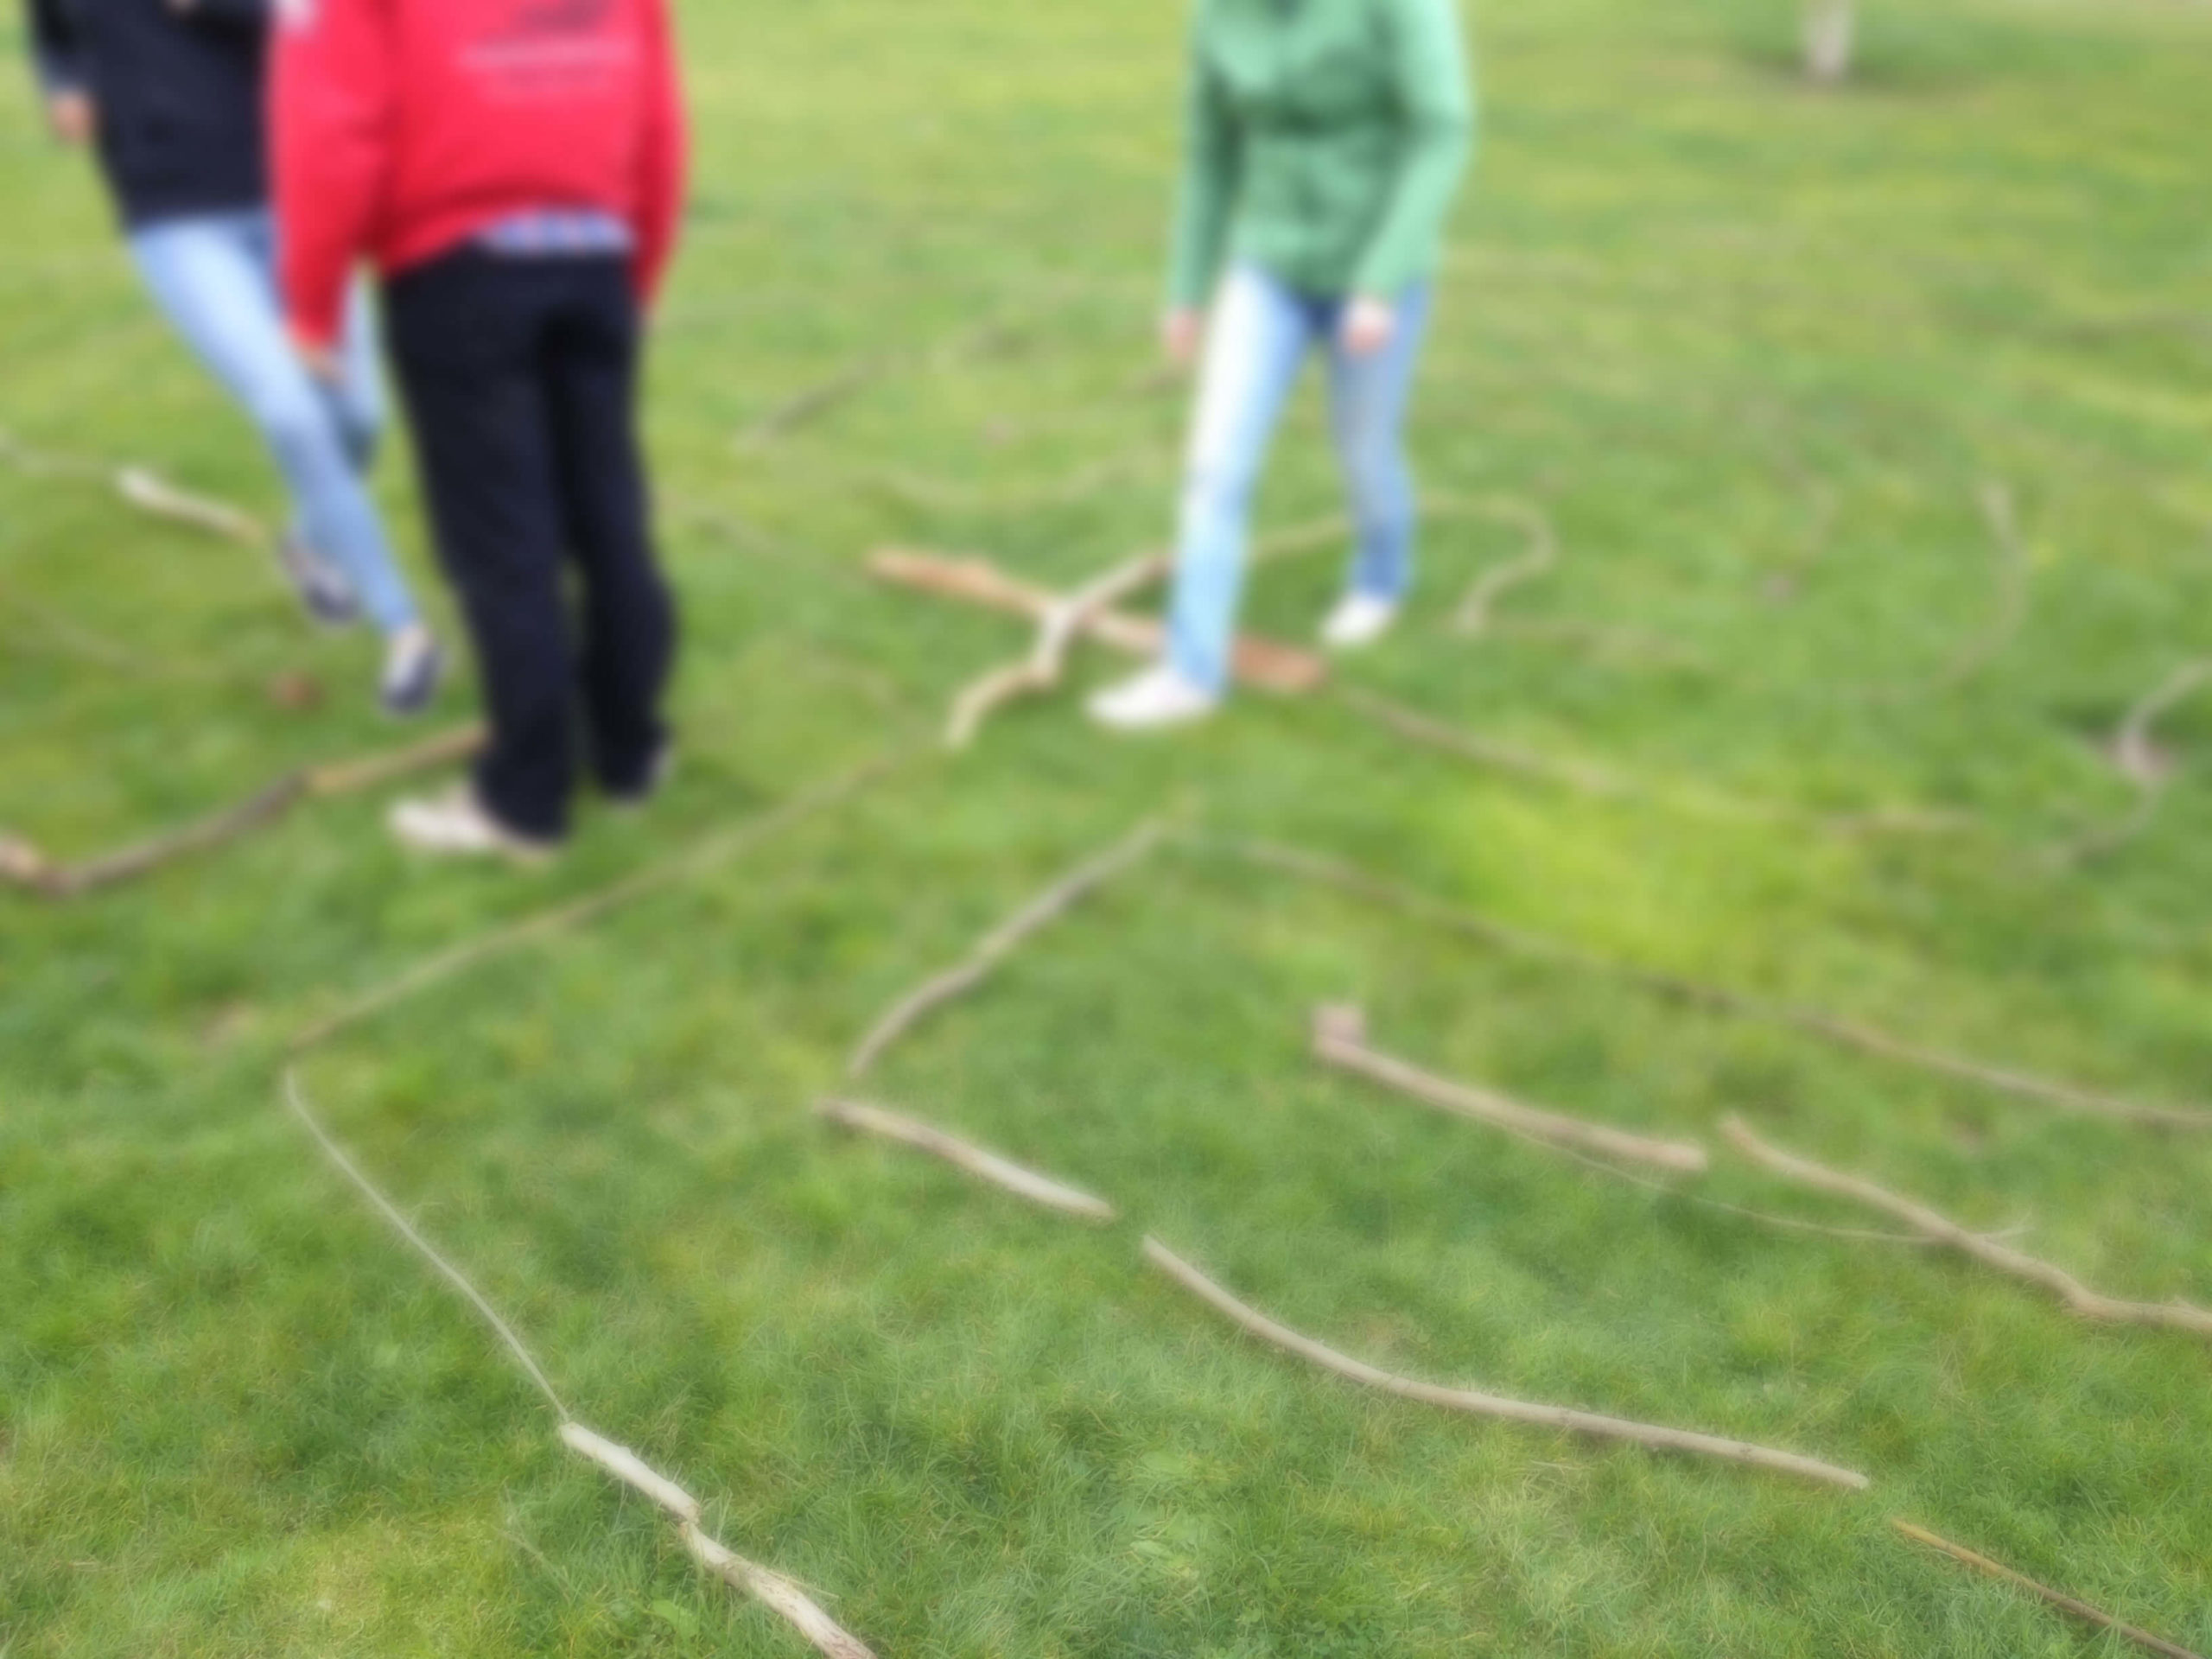 Learning Outdoors to Protect Children's Vision